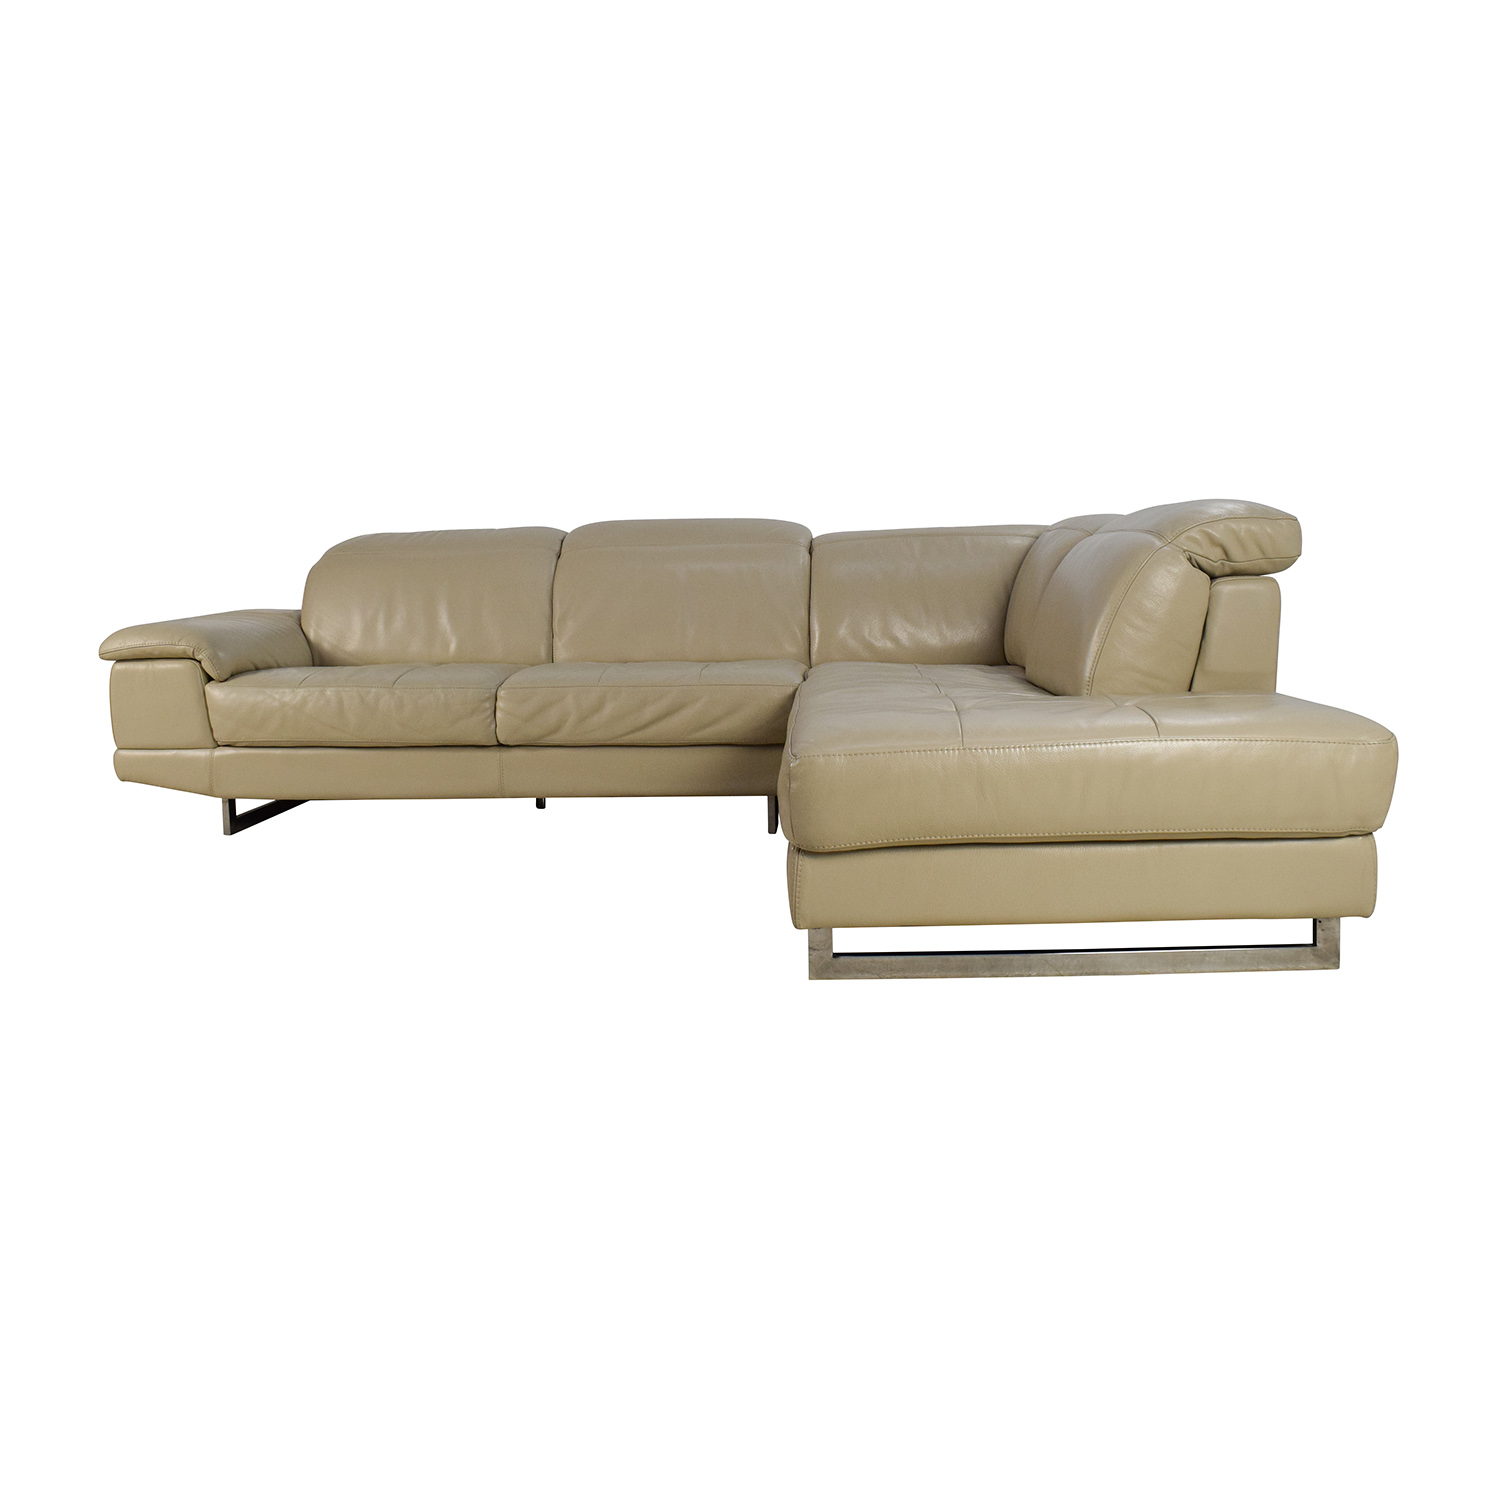 Beige Italian Leather Couch with Adjustable Headrests second hand